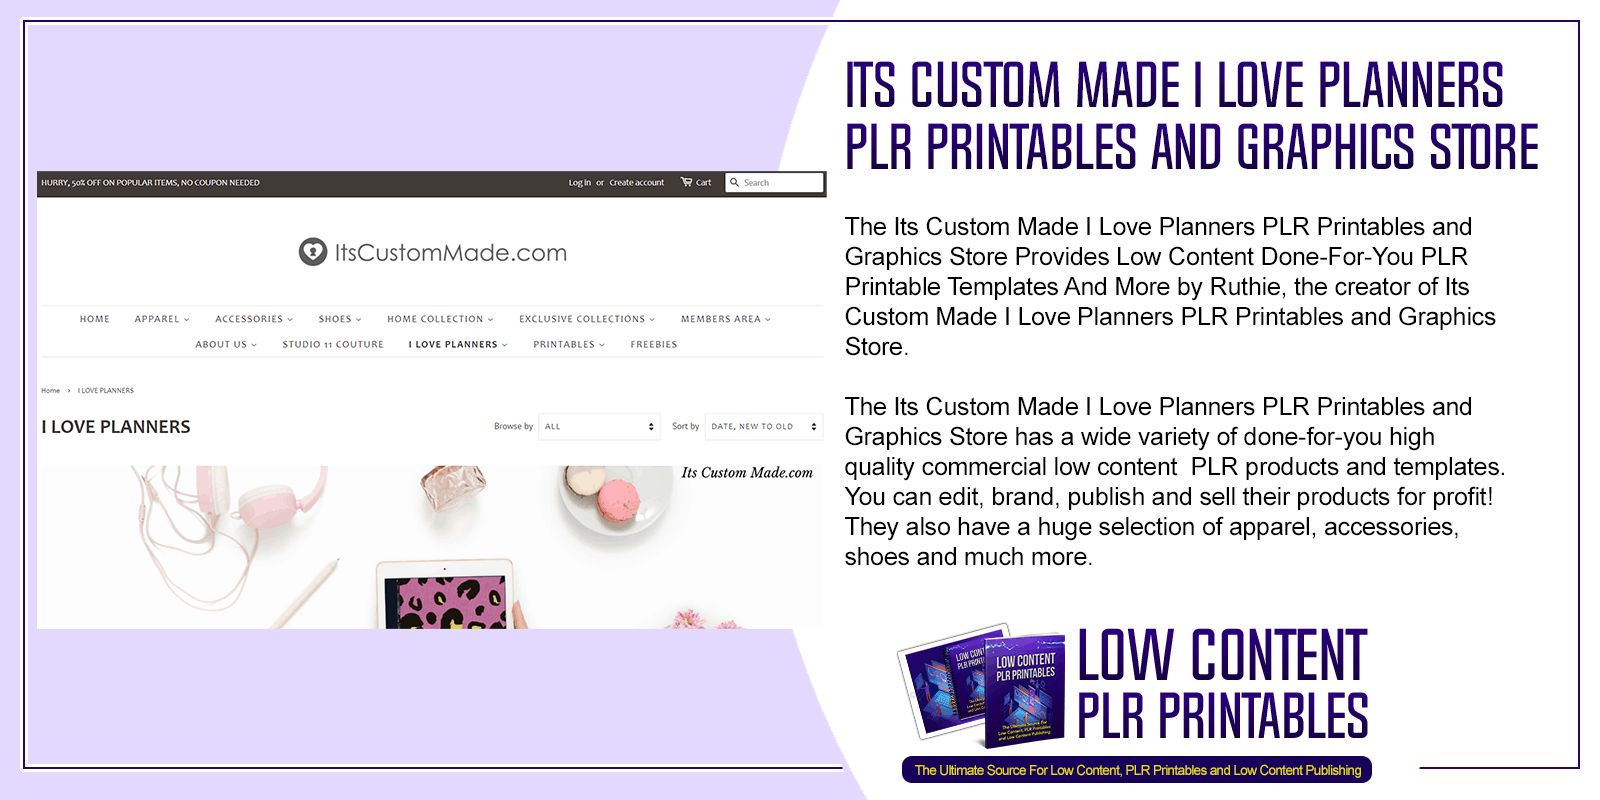 Its Custom Made I Love Planners PLR Printables and Graphics Store